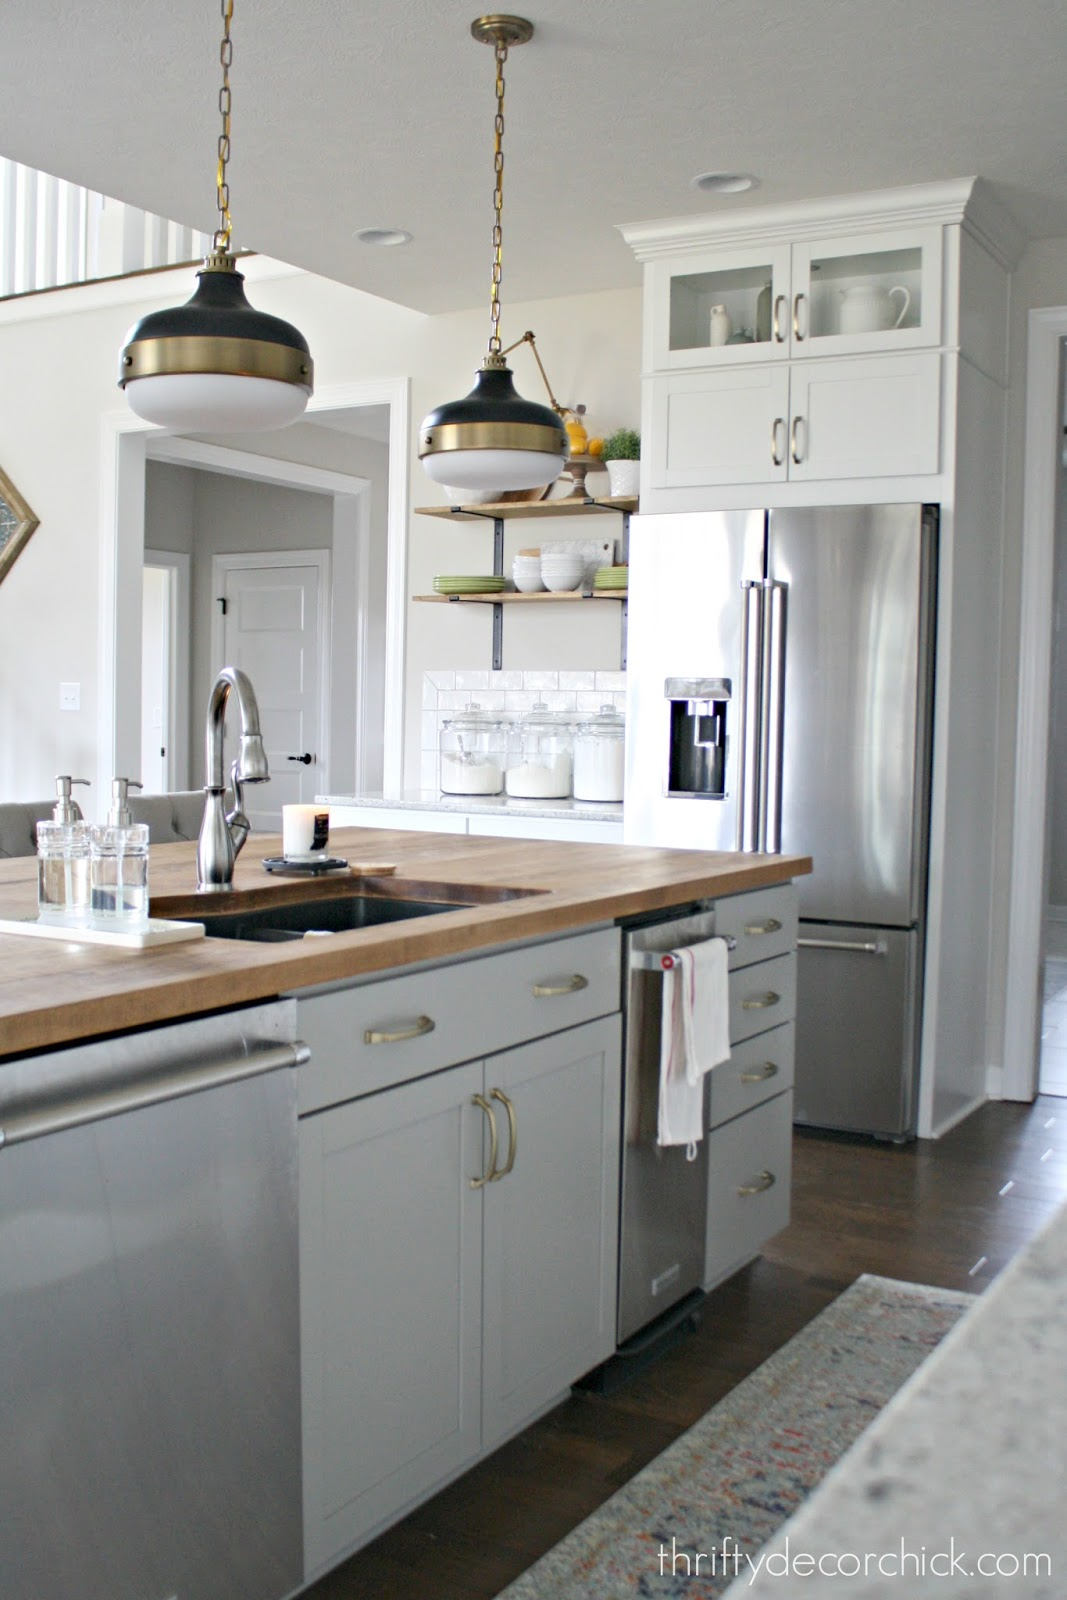 Gray island with wood countertops and sink